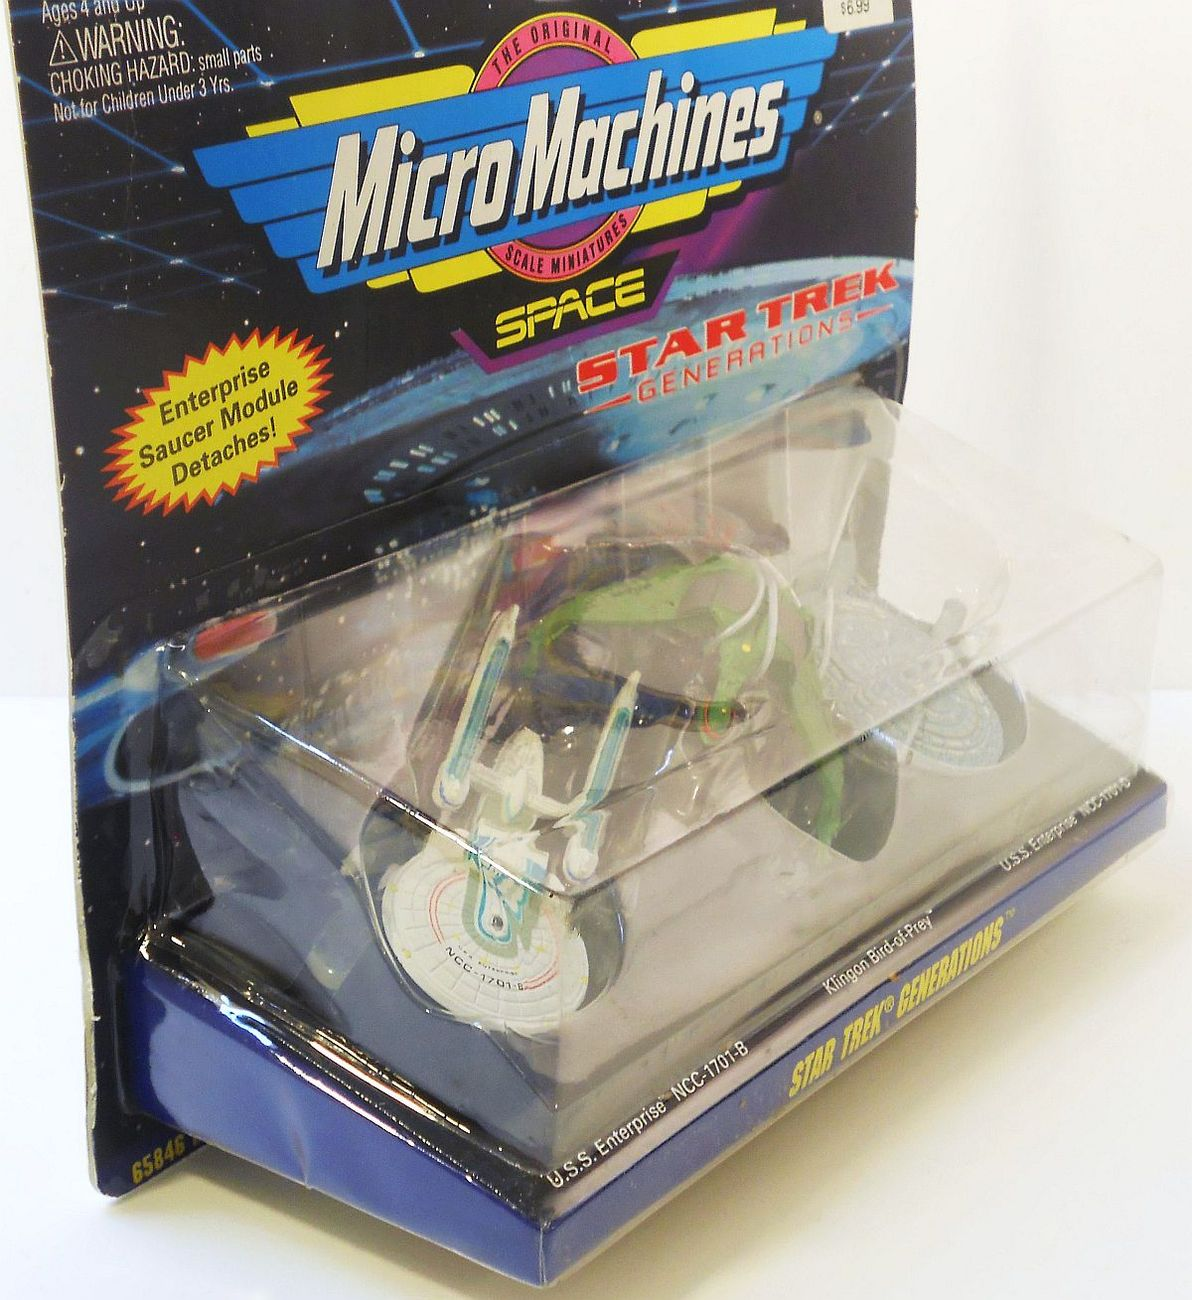 St_generations_micromachines_4